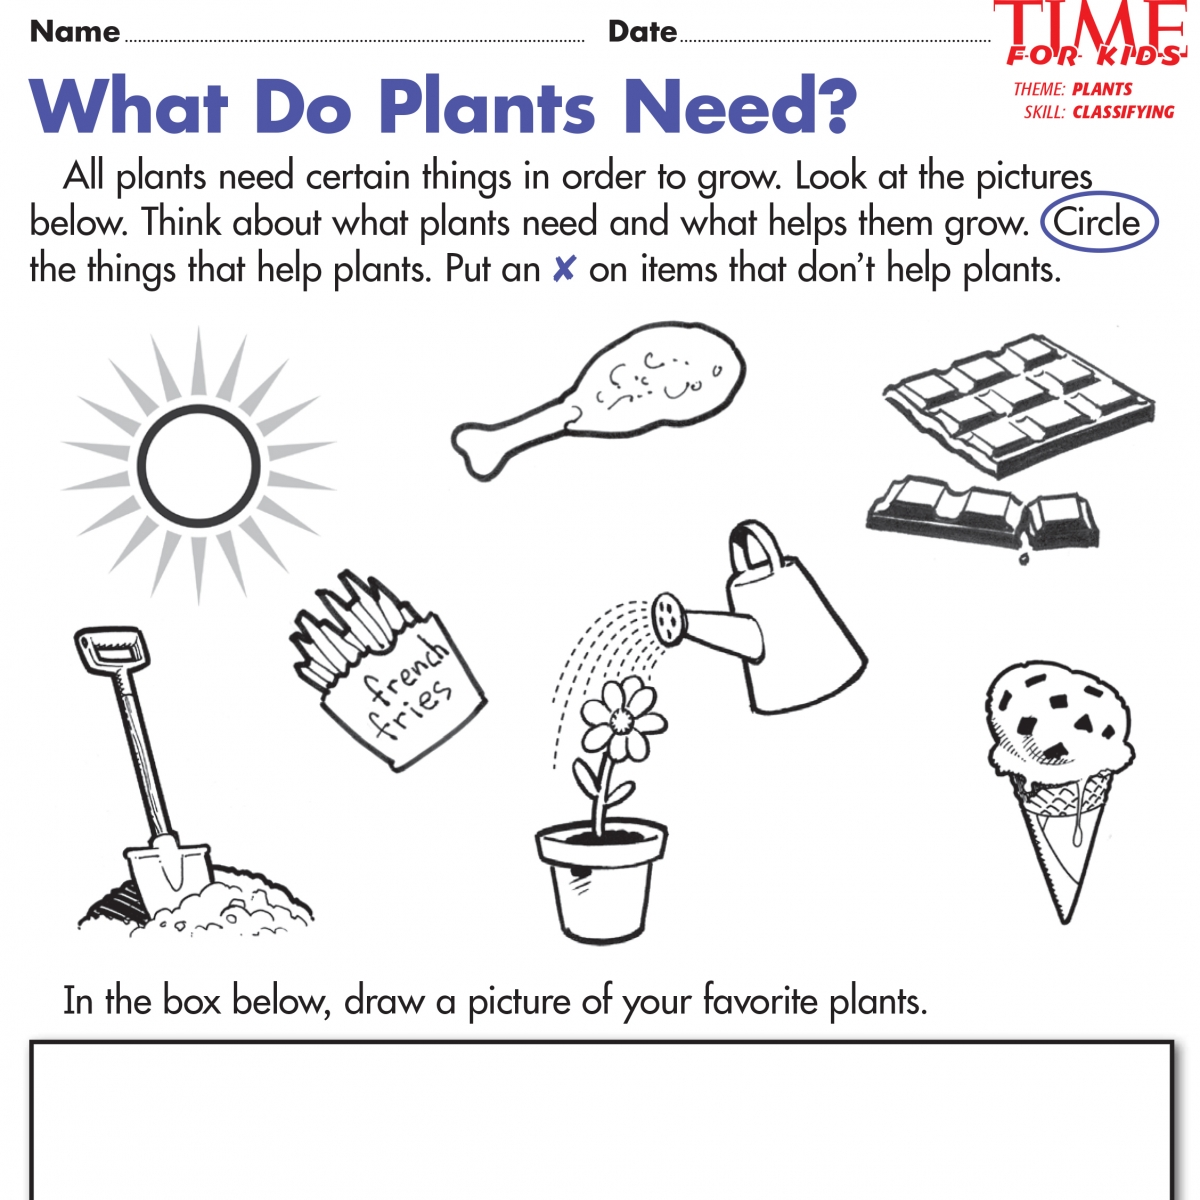 Social And Natural Sciences For Second Grade 17 Plants Worksheets